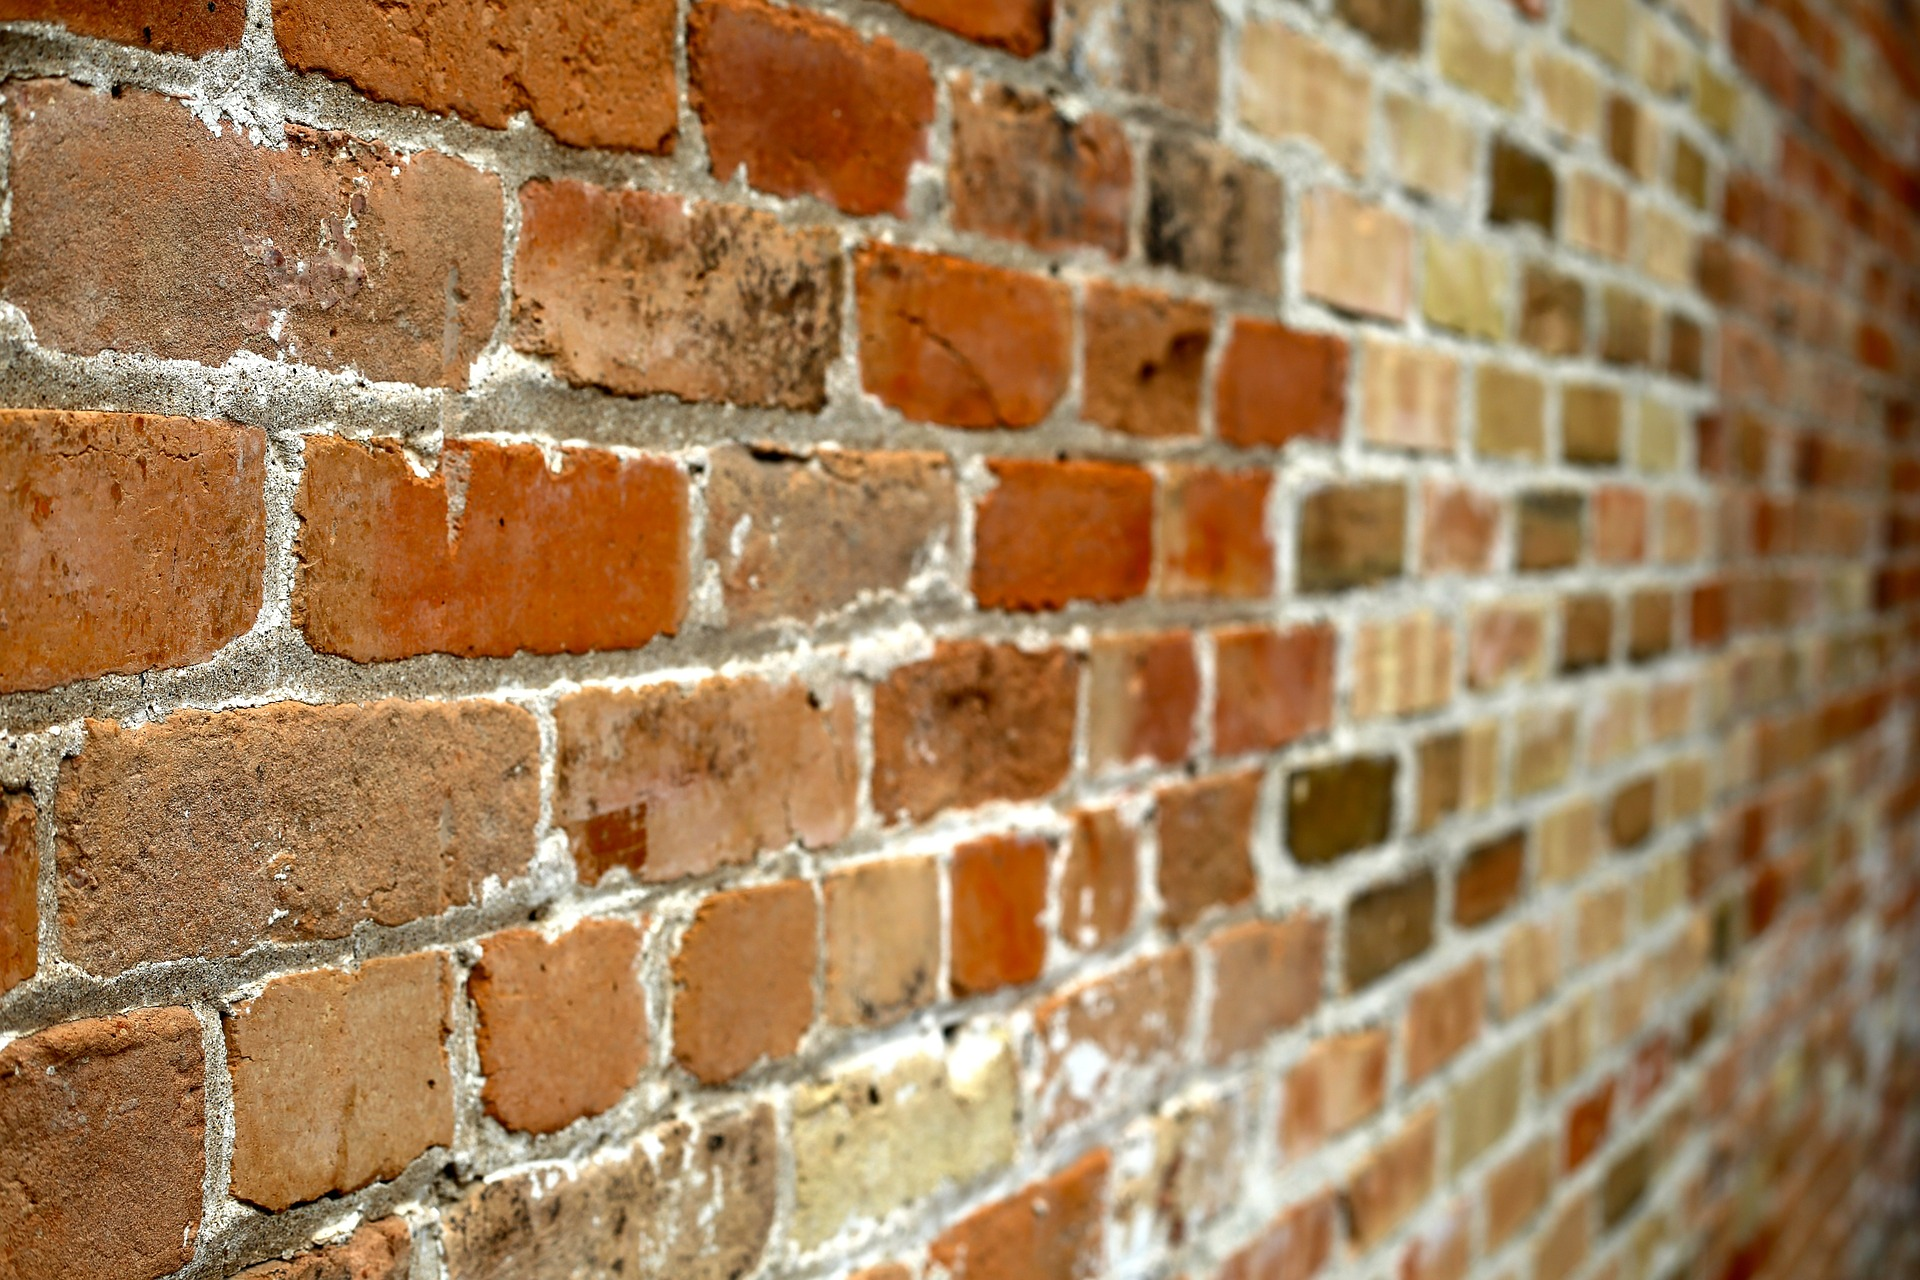 wall-of-bricks-445604_1920